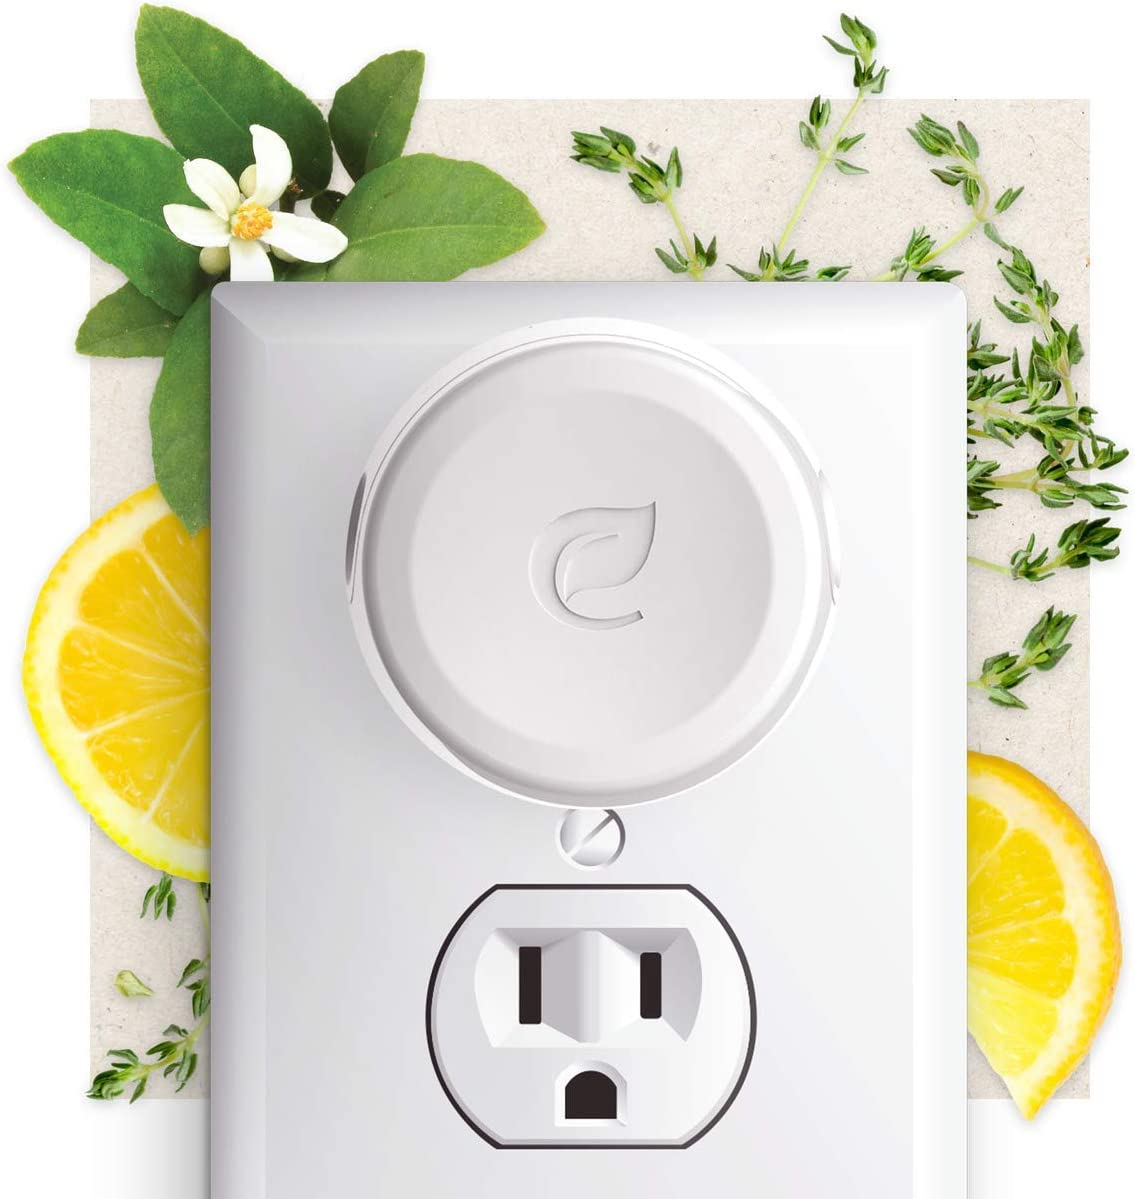 Enviroscent Non-Toxic Plug-in (3-Piece Set) Room & Home Air Freshener Kit (Lemon Leaf + Thyme) Infused with Essential Oils | 1 Refillable Plug Hub & 2 Liquidless Scent Pods